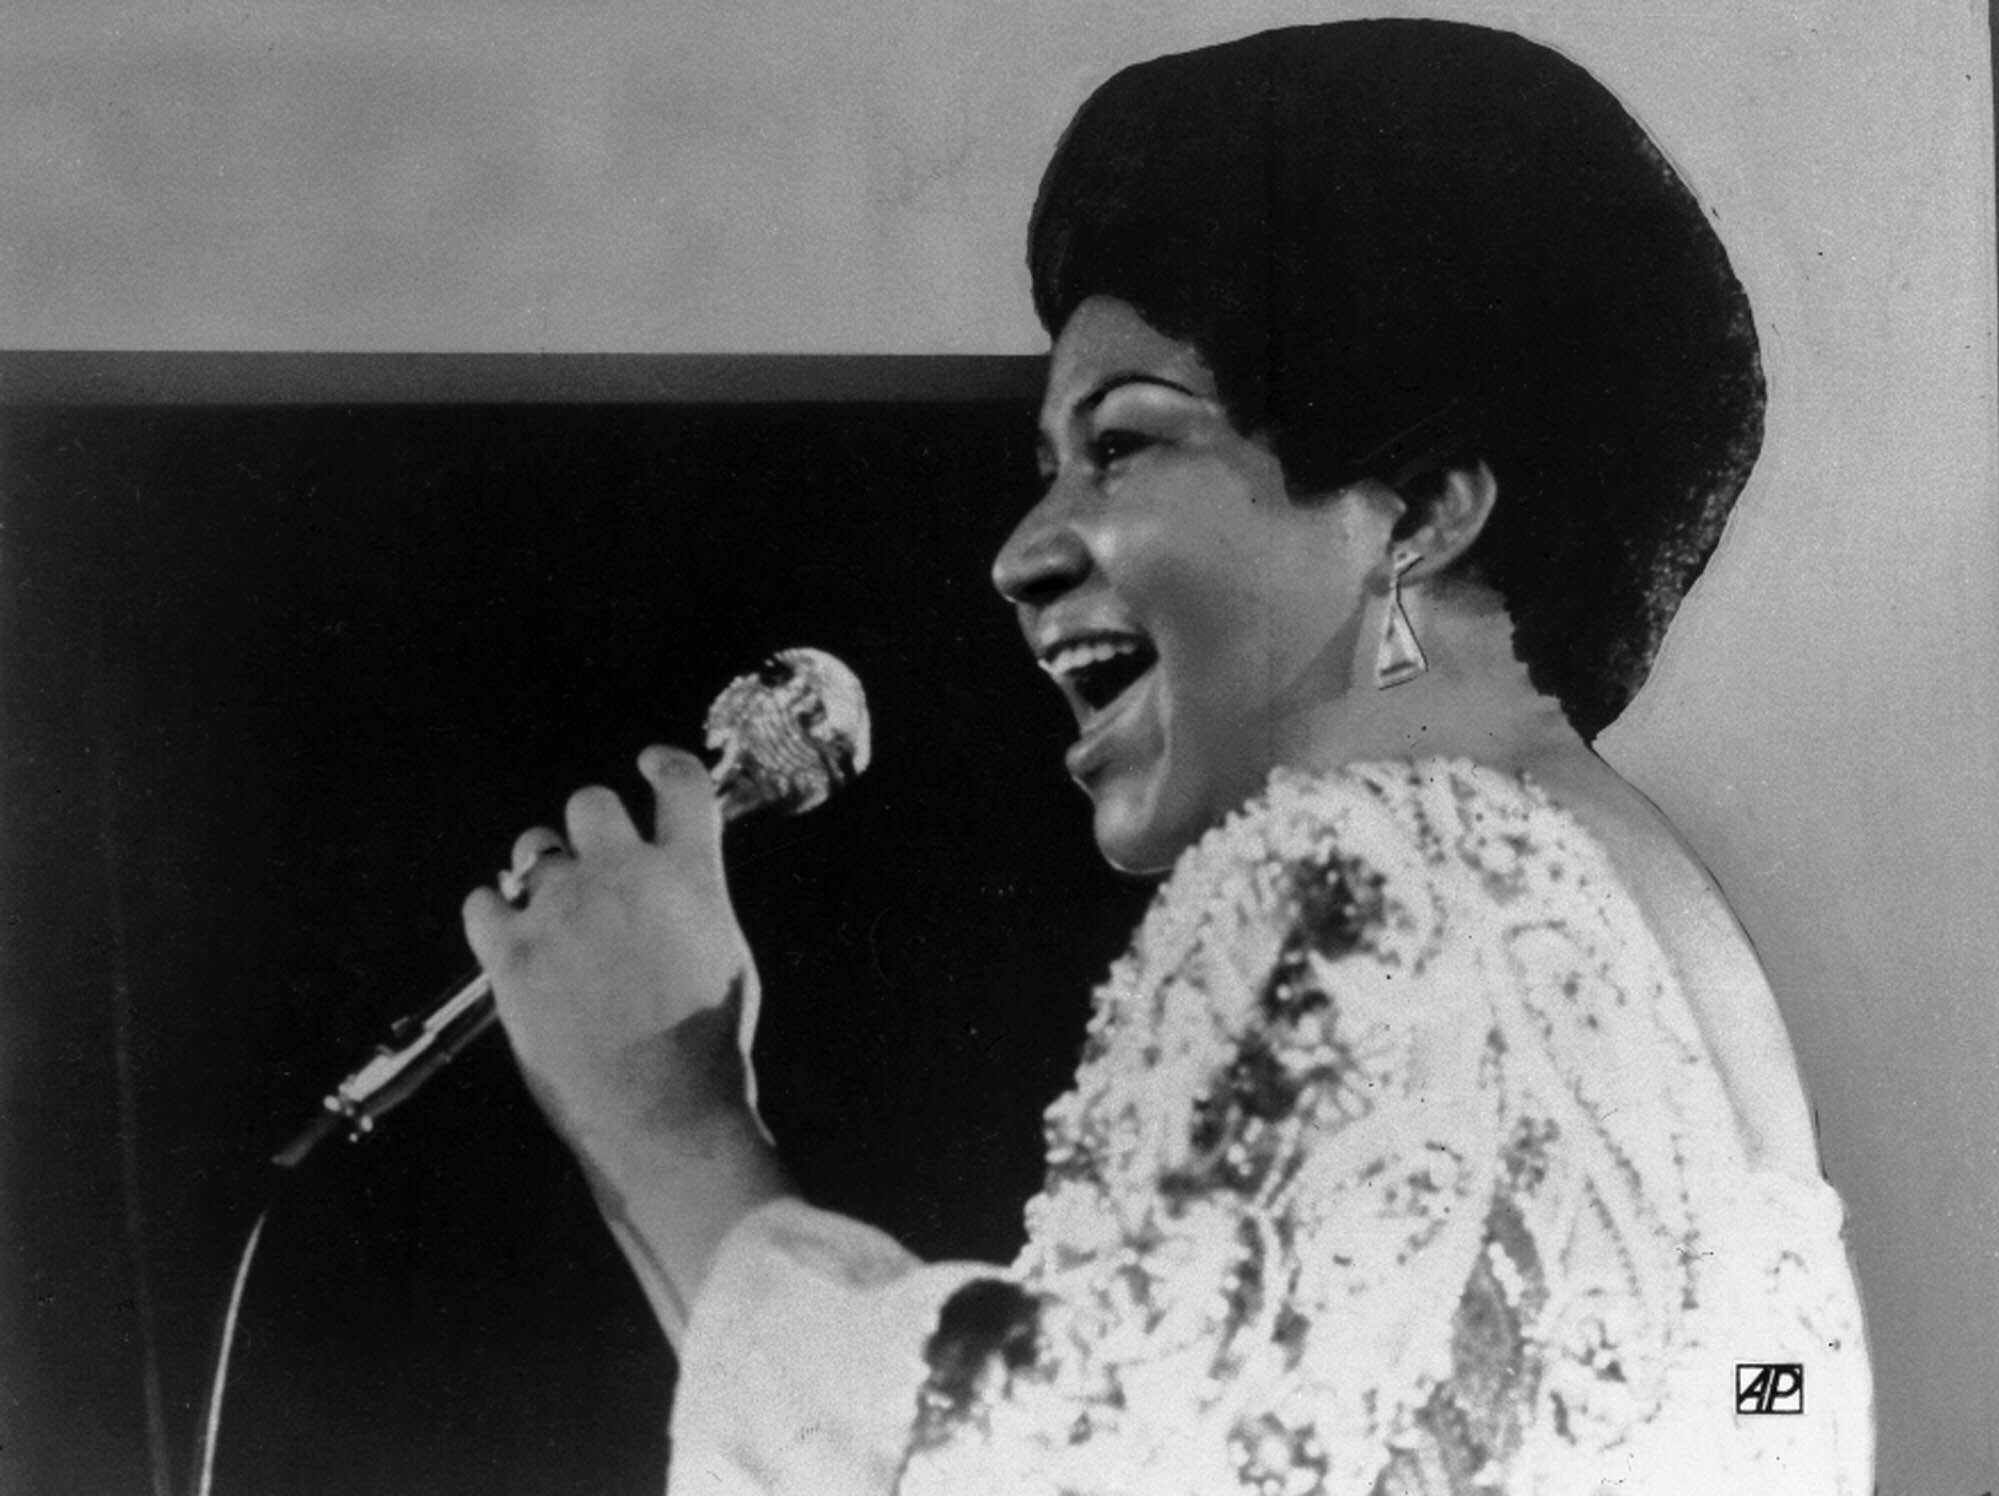 Vocalist Aretha Franklin warbles a few notes into microphone in Jan. 28, 1972 photo. (AP Photo)